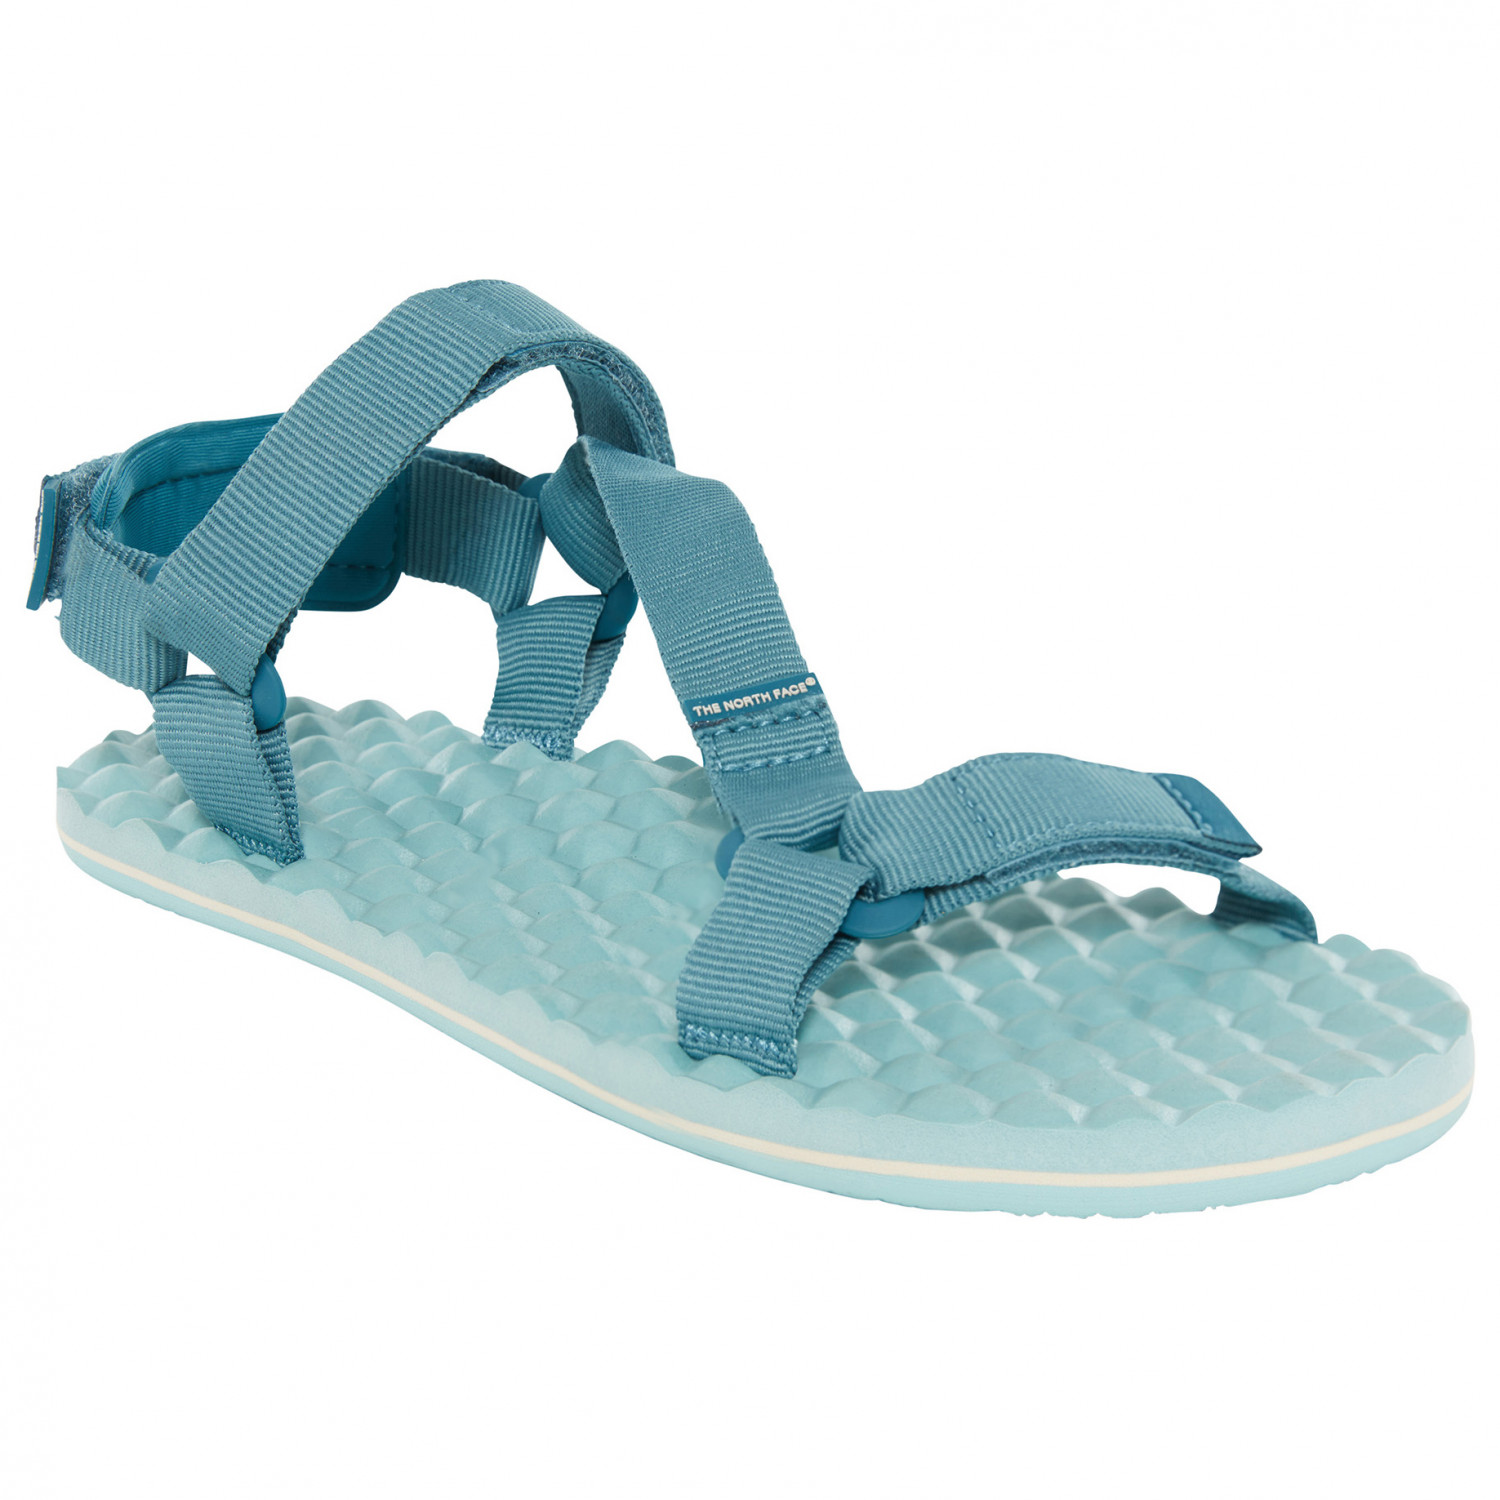 newest 80092 f3ccf The North Face - Women's Base Camp Switchback Sandal - Sandalen - Storm  Blue / Canal Blue | 10 (US)